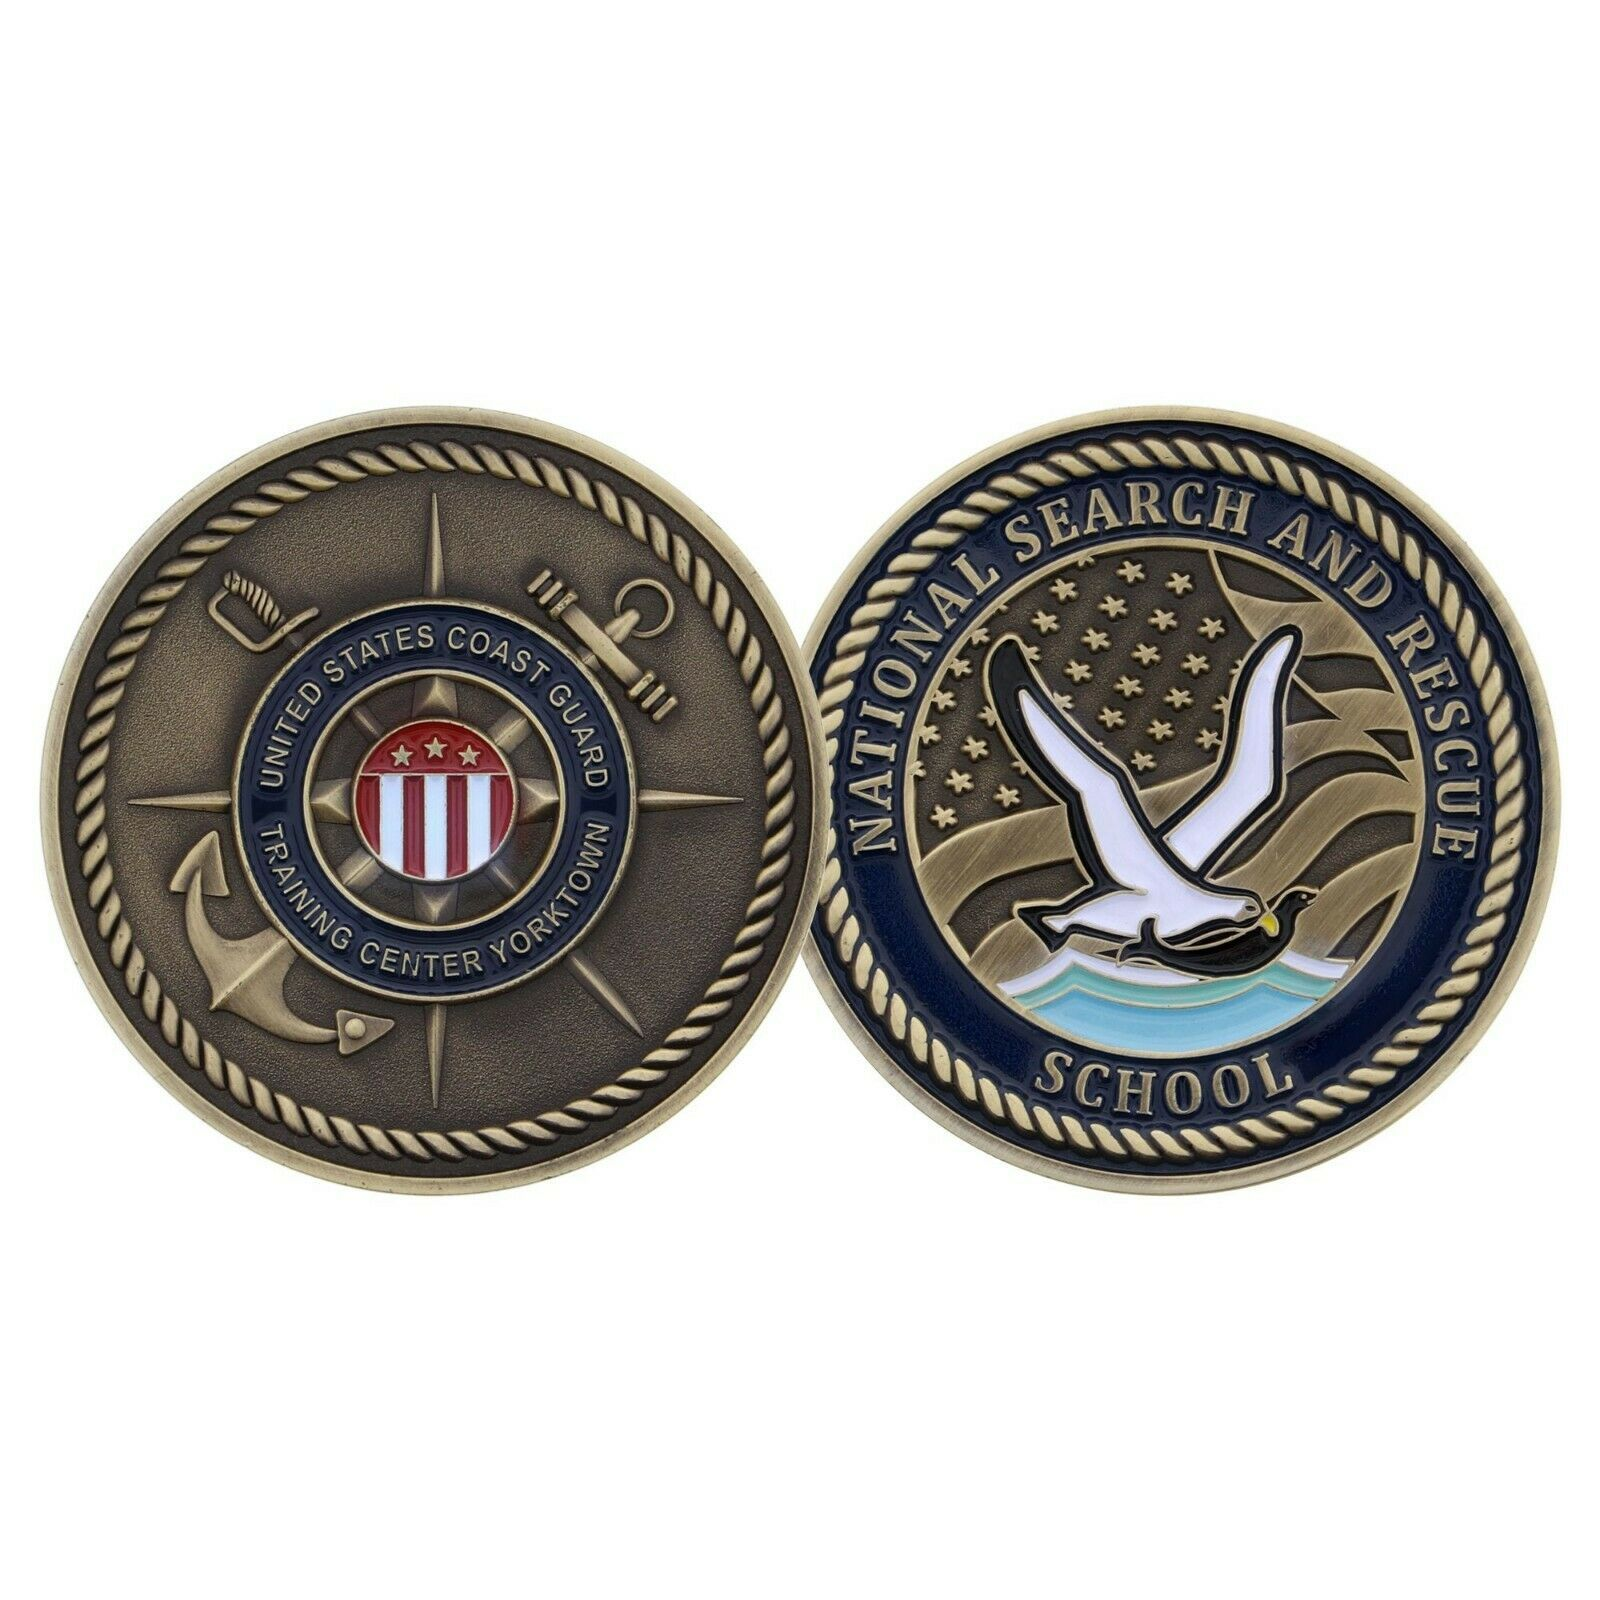 "USCG COAST GUARD YORKTOWN SEARCH AND RESCUE SCHOOL 1.75"" CHALLENGE COIN"